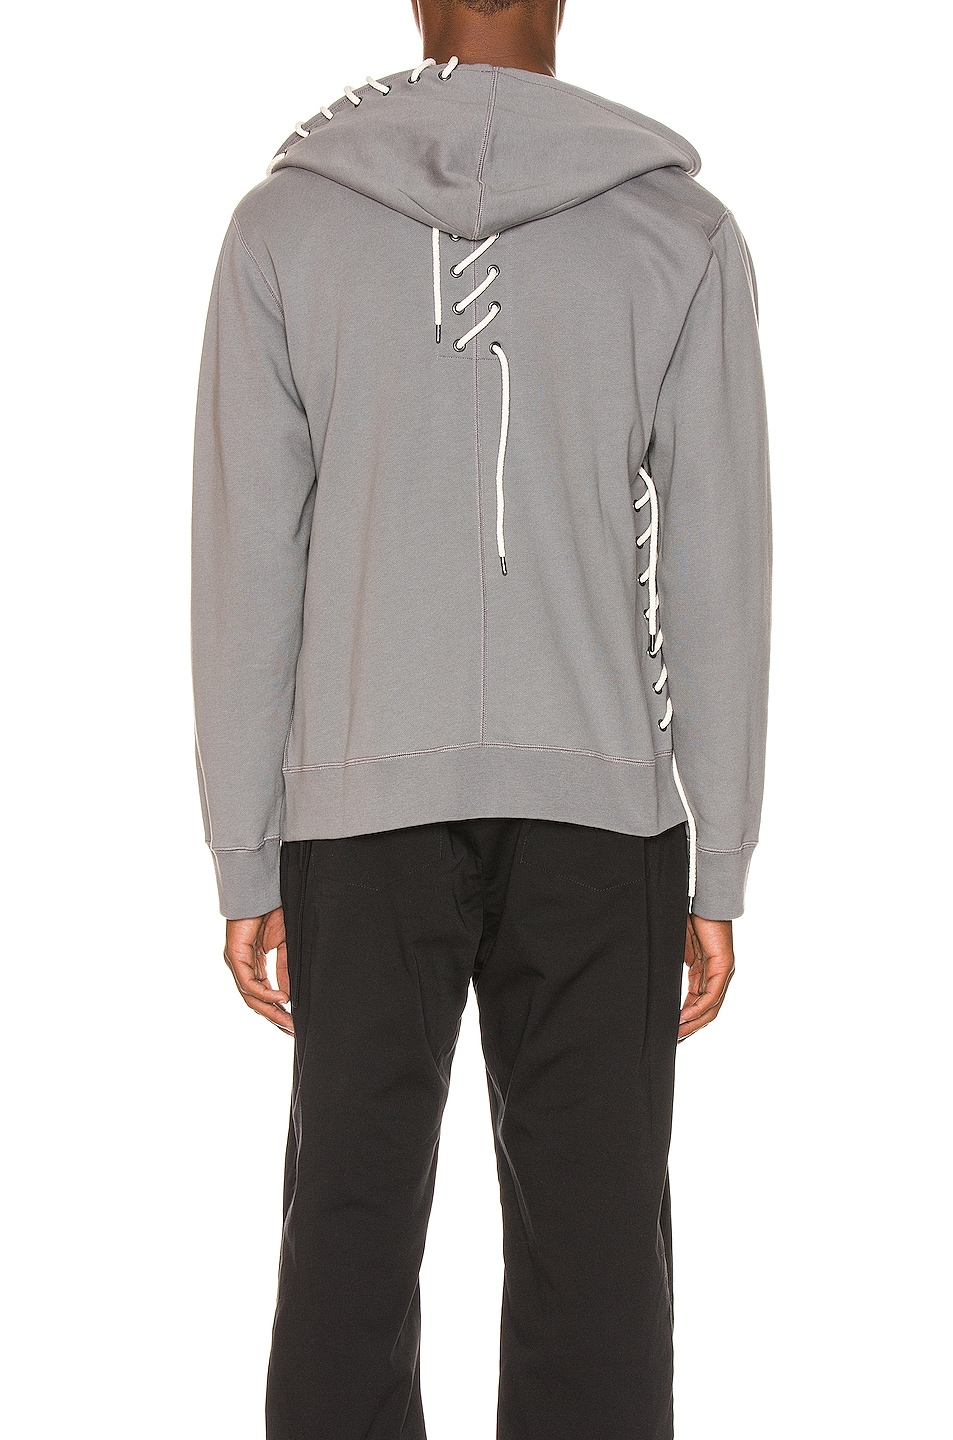 Image 5 of Craig Green Laced Zip Up Hoodie in Grey